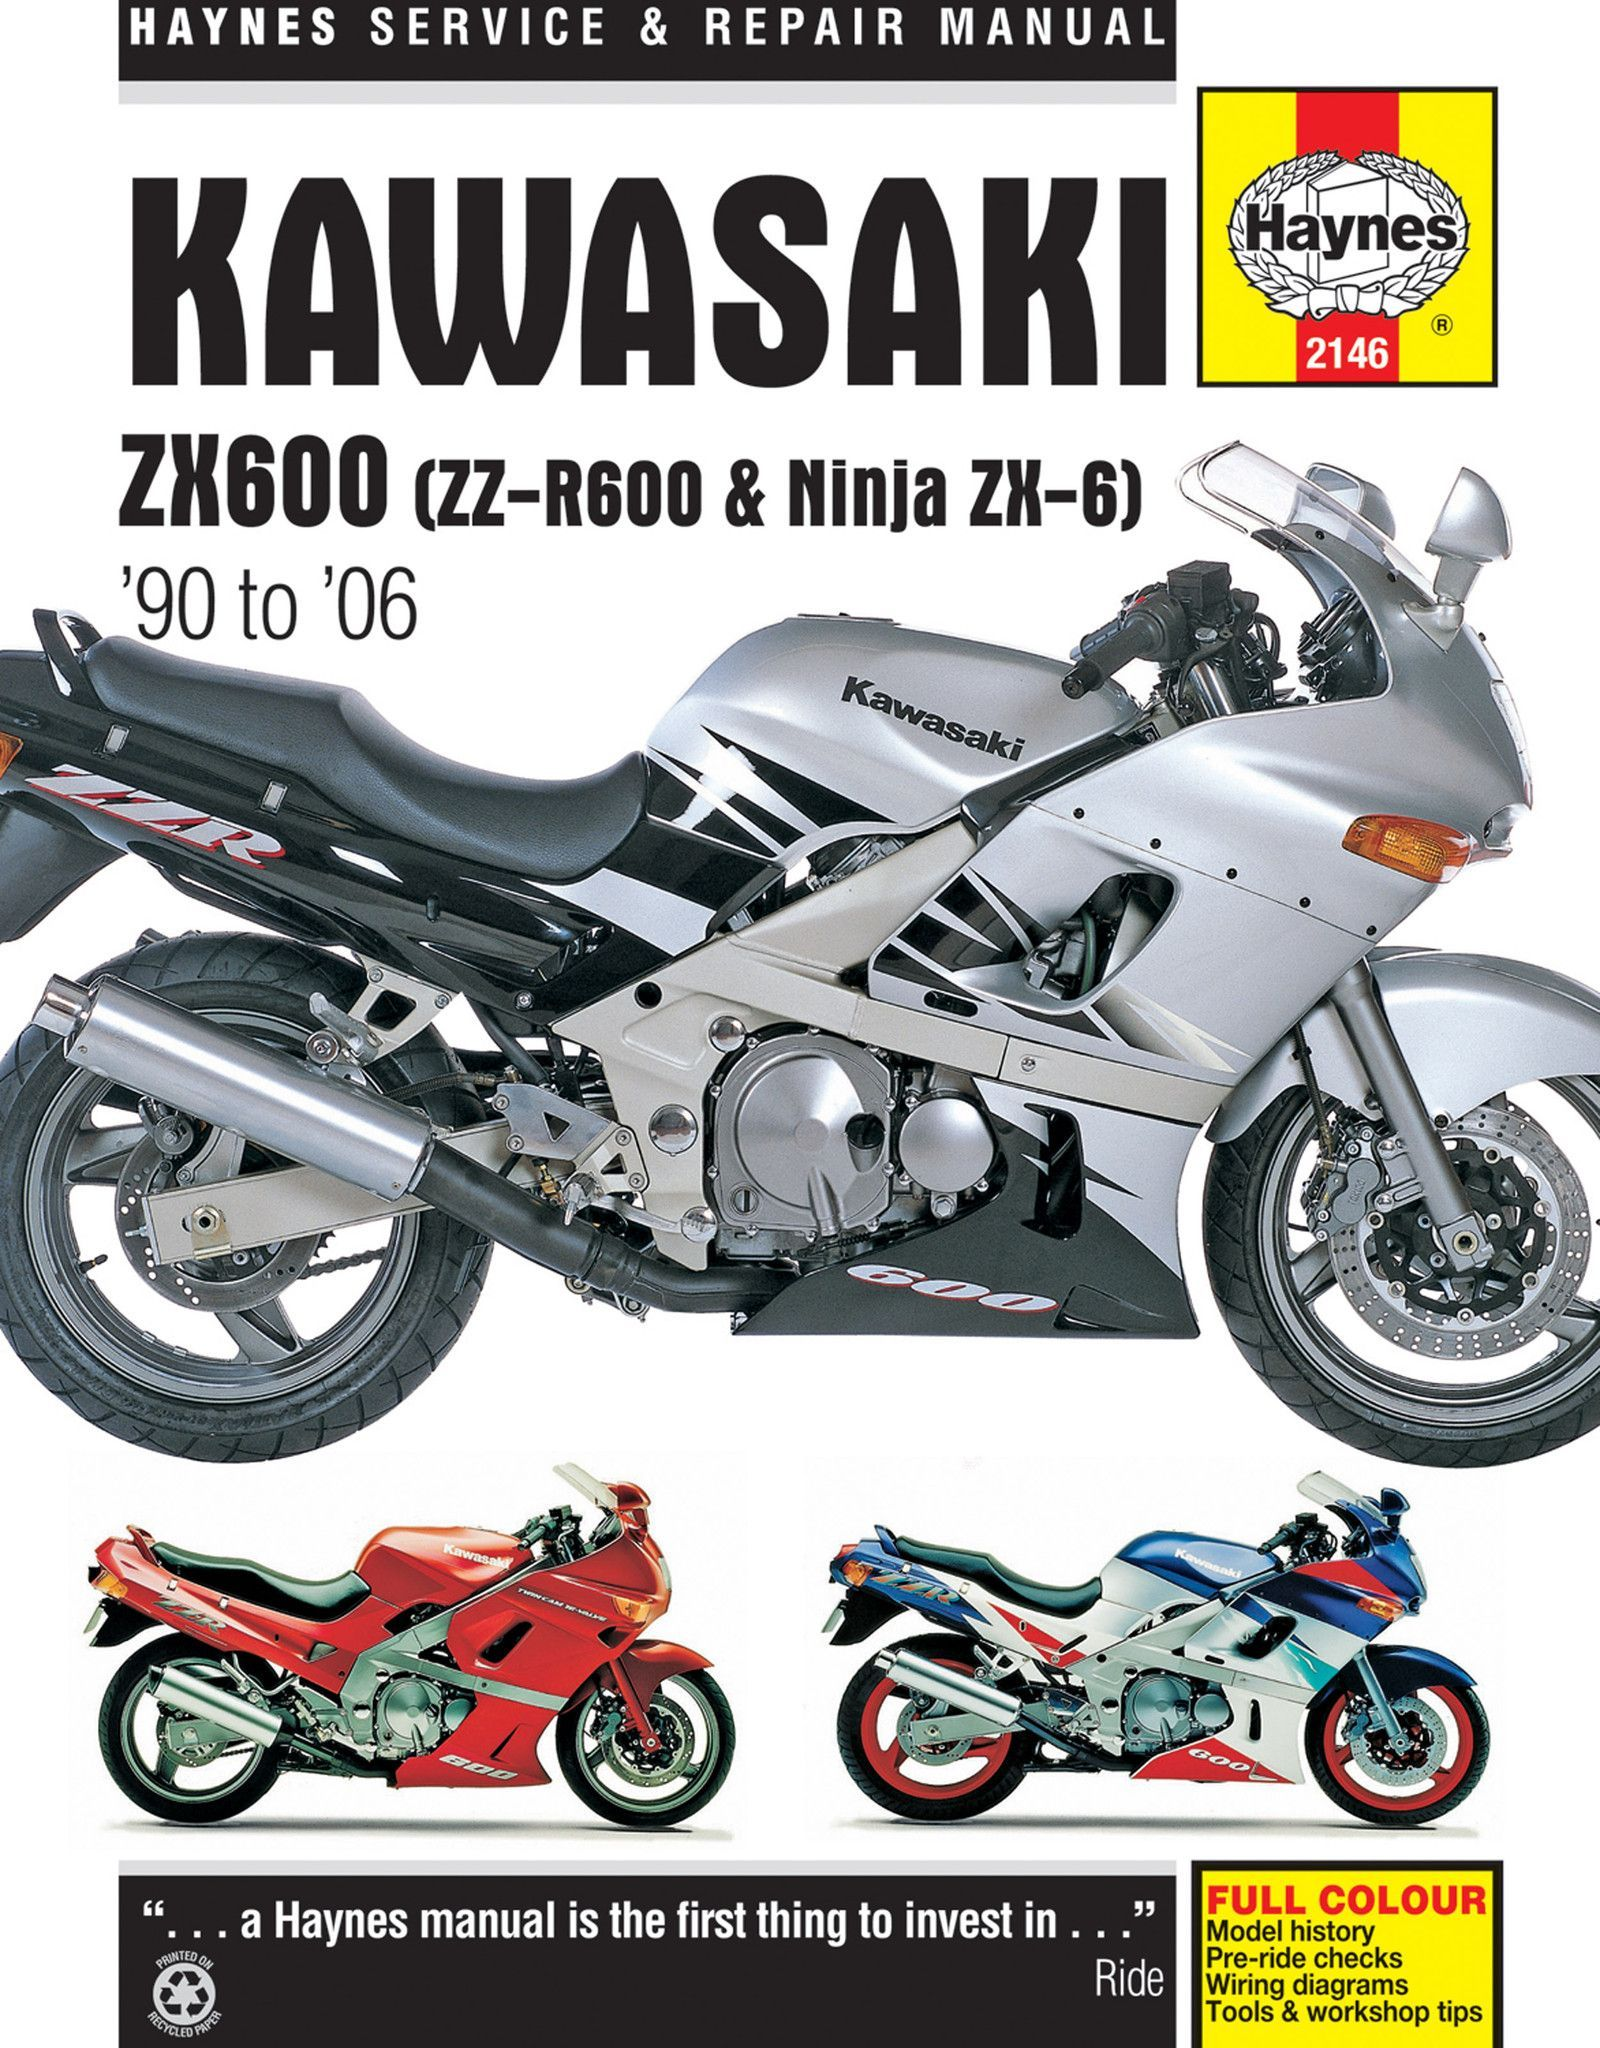 Haynes M2146 Repair Manual for 1990-04 Kawasaki ZX600 / ZZ-R600 / Ninja ZX-6